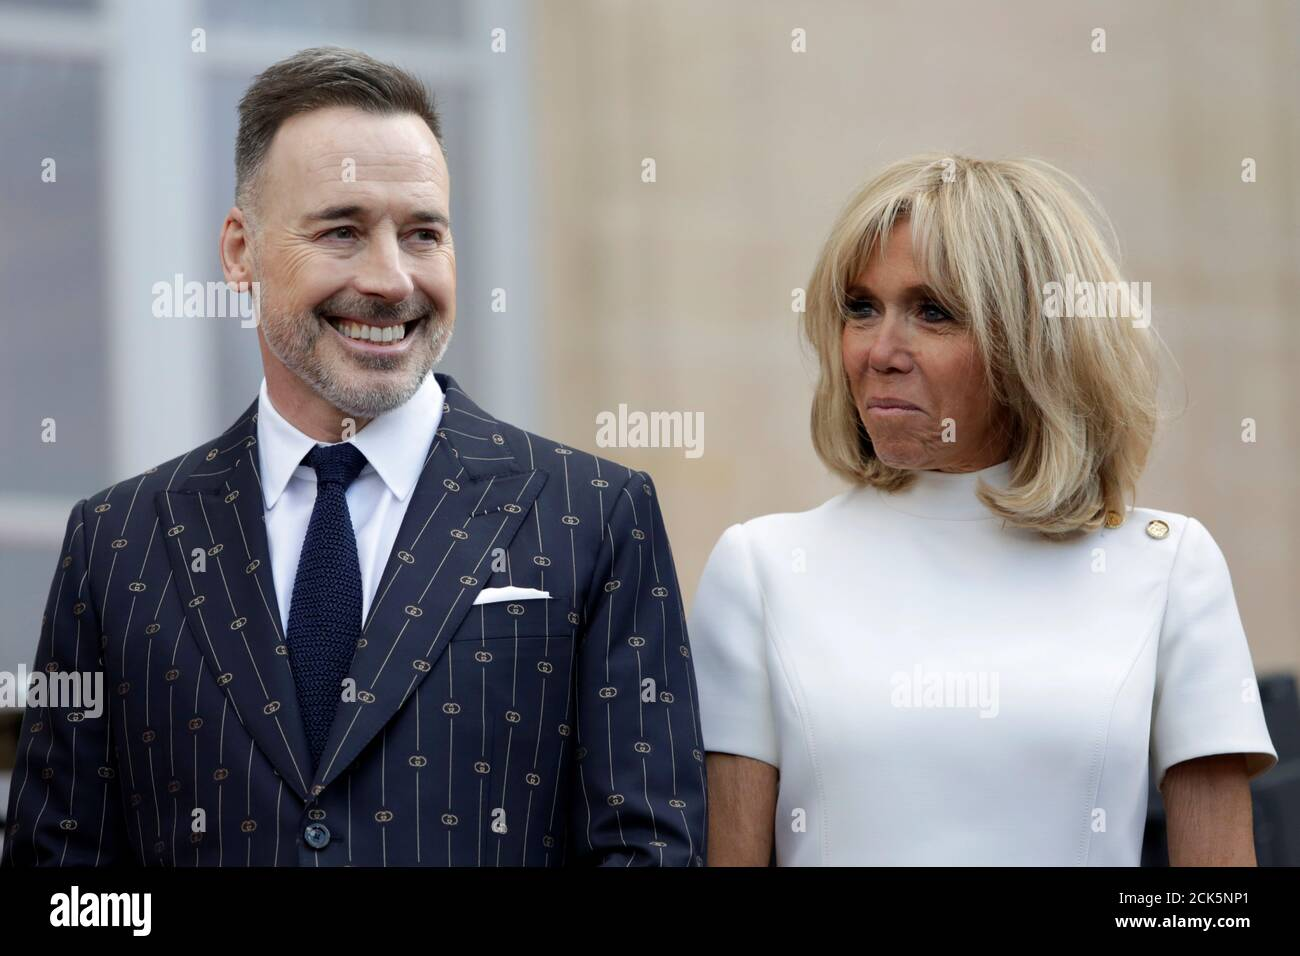 Elton Johns Husband High Resolution Stock Photography And Images Alamy